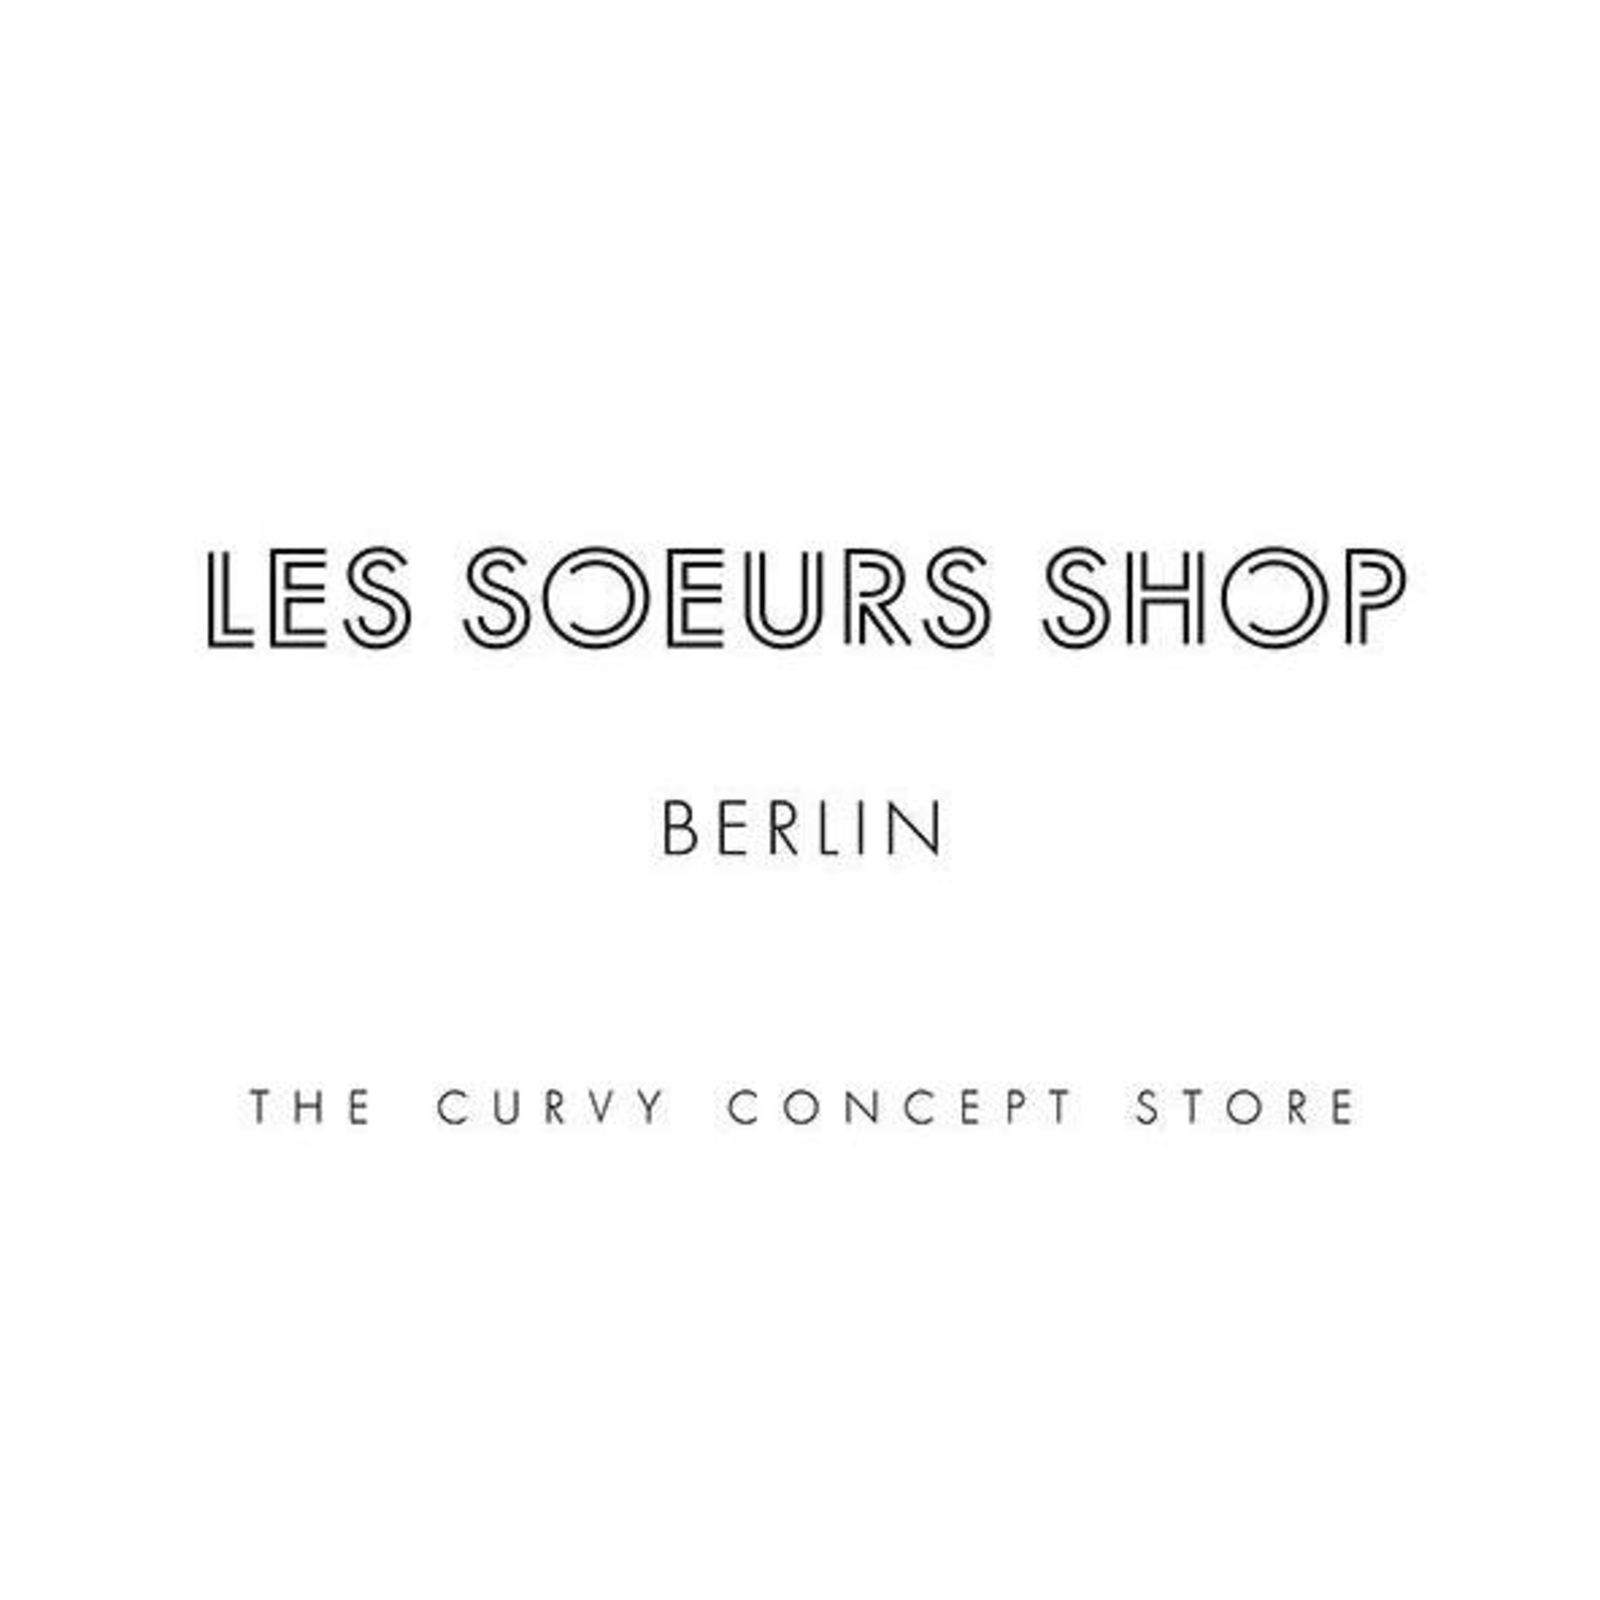 Les Soeurs Shop - The Curvy Concept Store in Berlin (Bild 1)